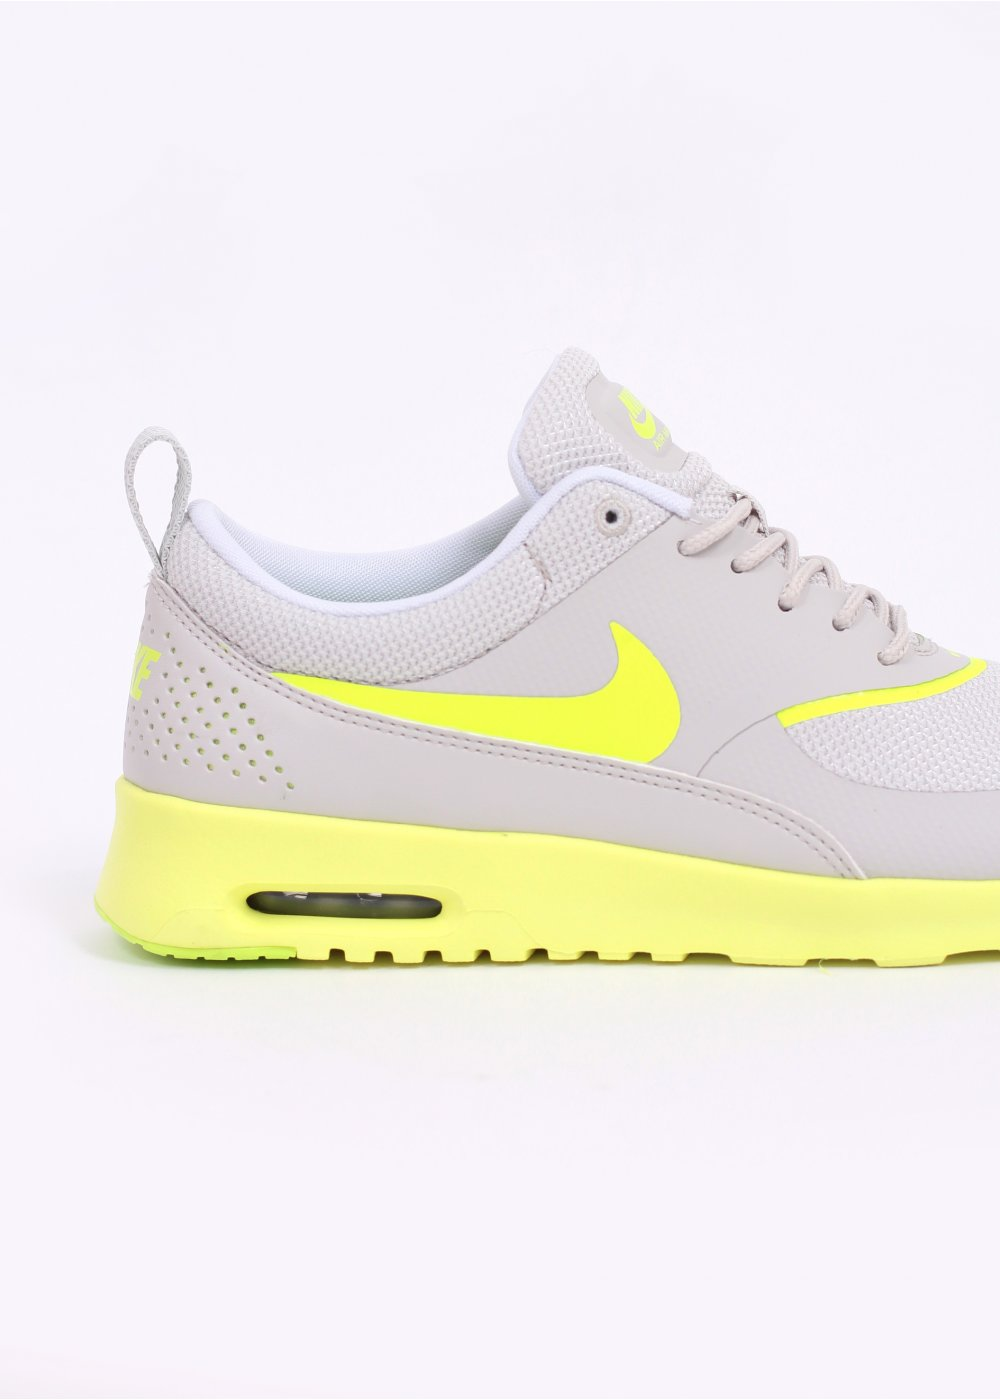 usa air max grey and yellow 2b5a5 af52e